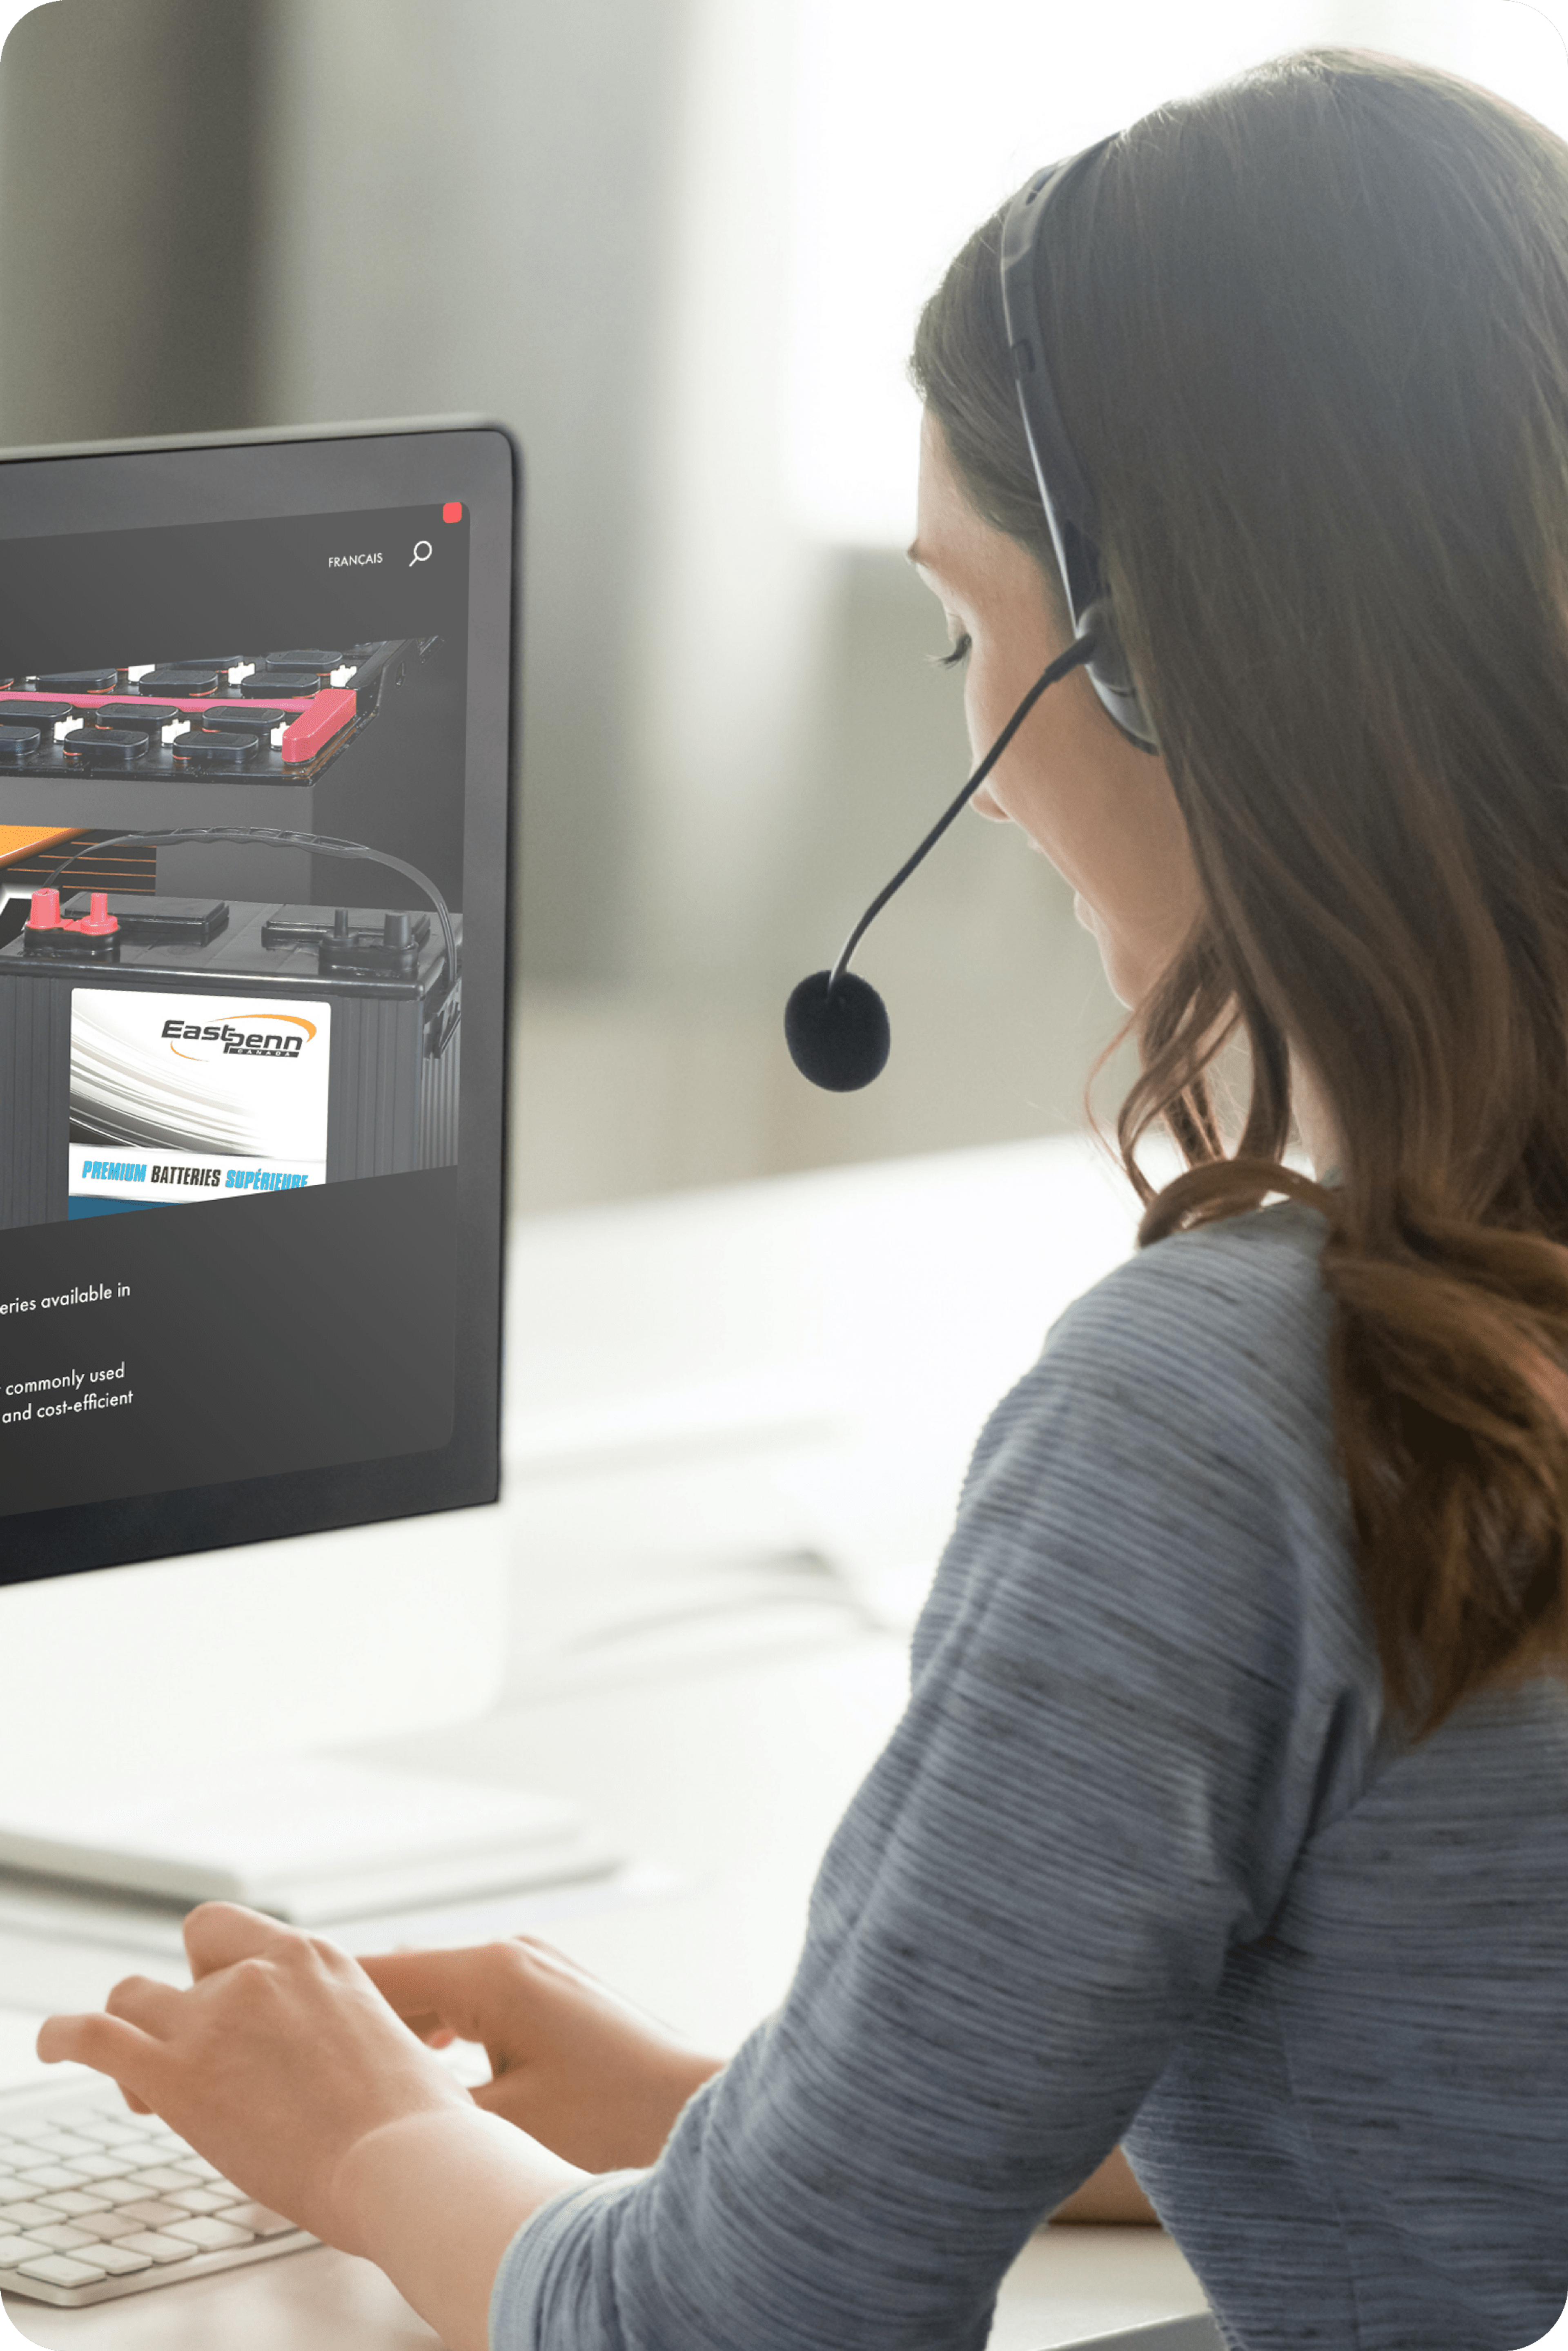 Picture of woman offering customer care via her headset while using a computer with two monitors showing images of East Penn car battery and East Penn website